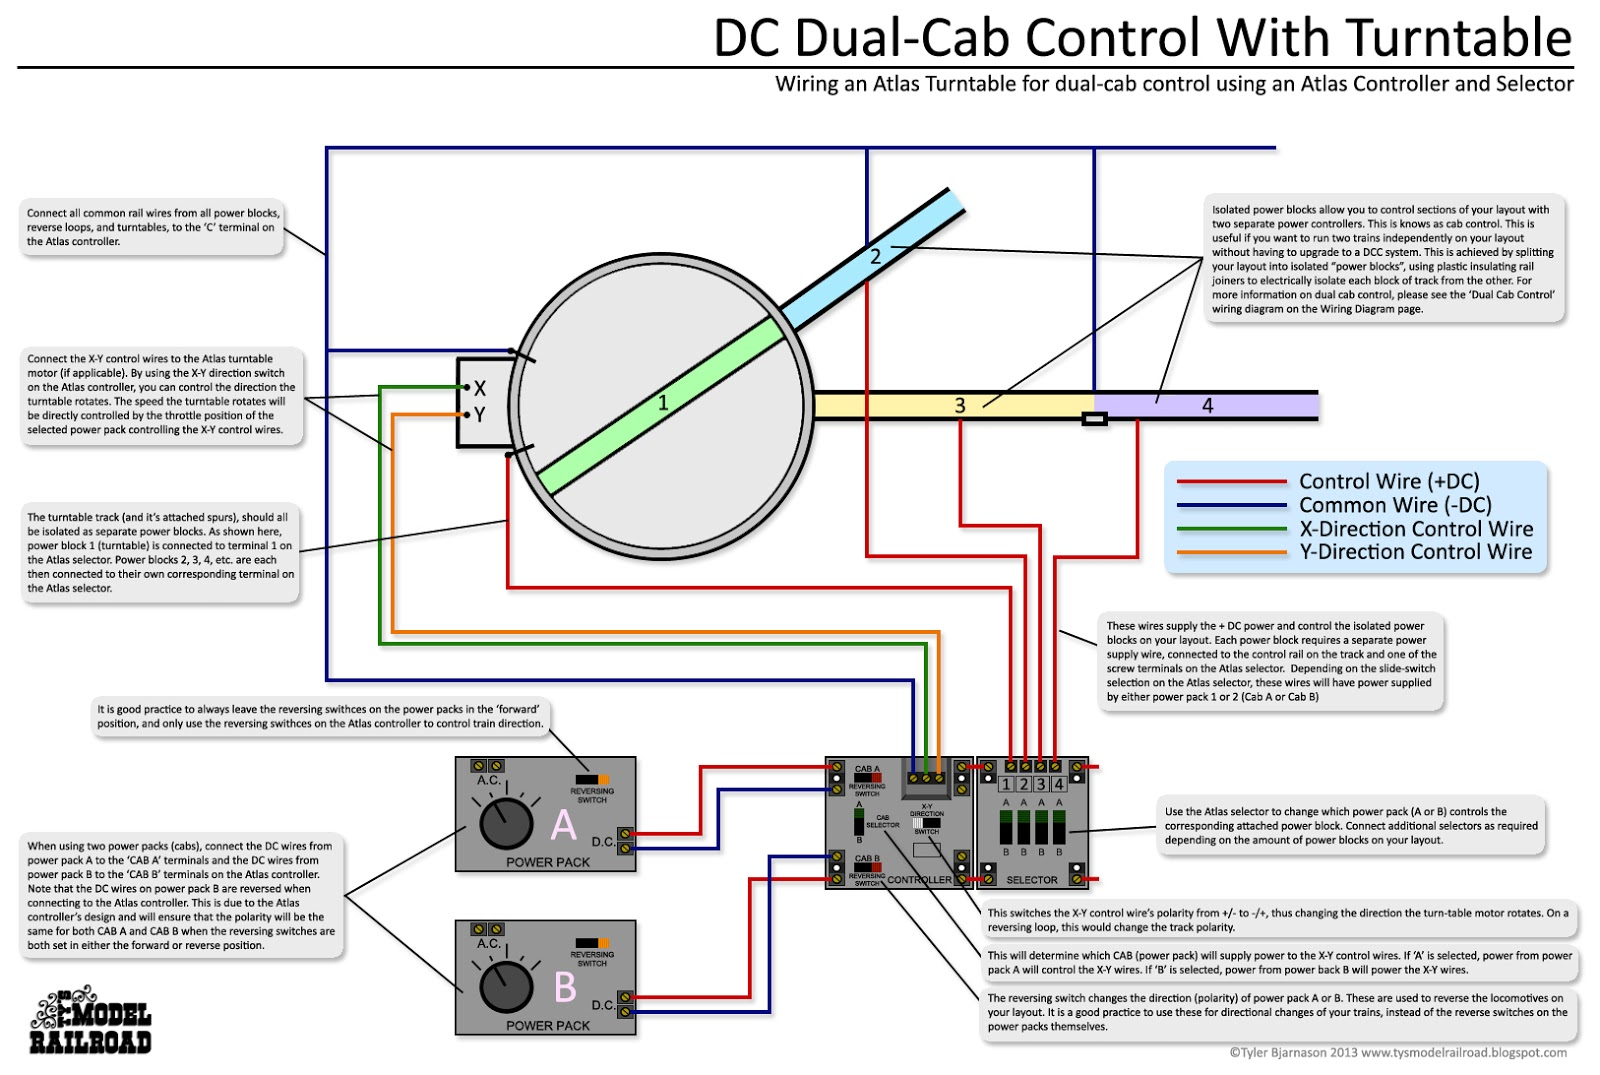 medium resolution of how to use dual cab control to power and operate a turntable and turntable motor using